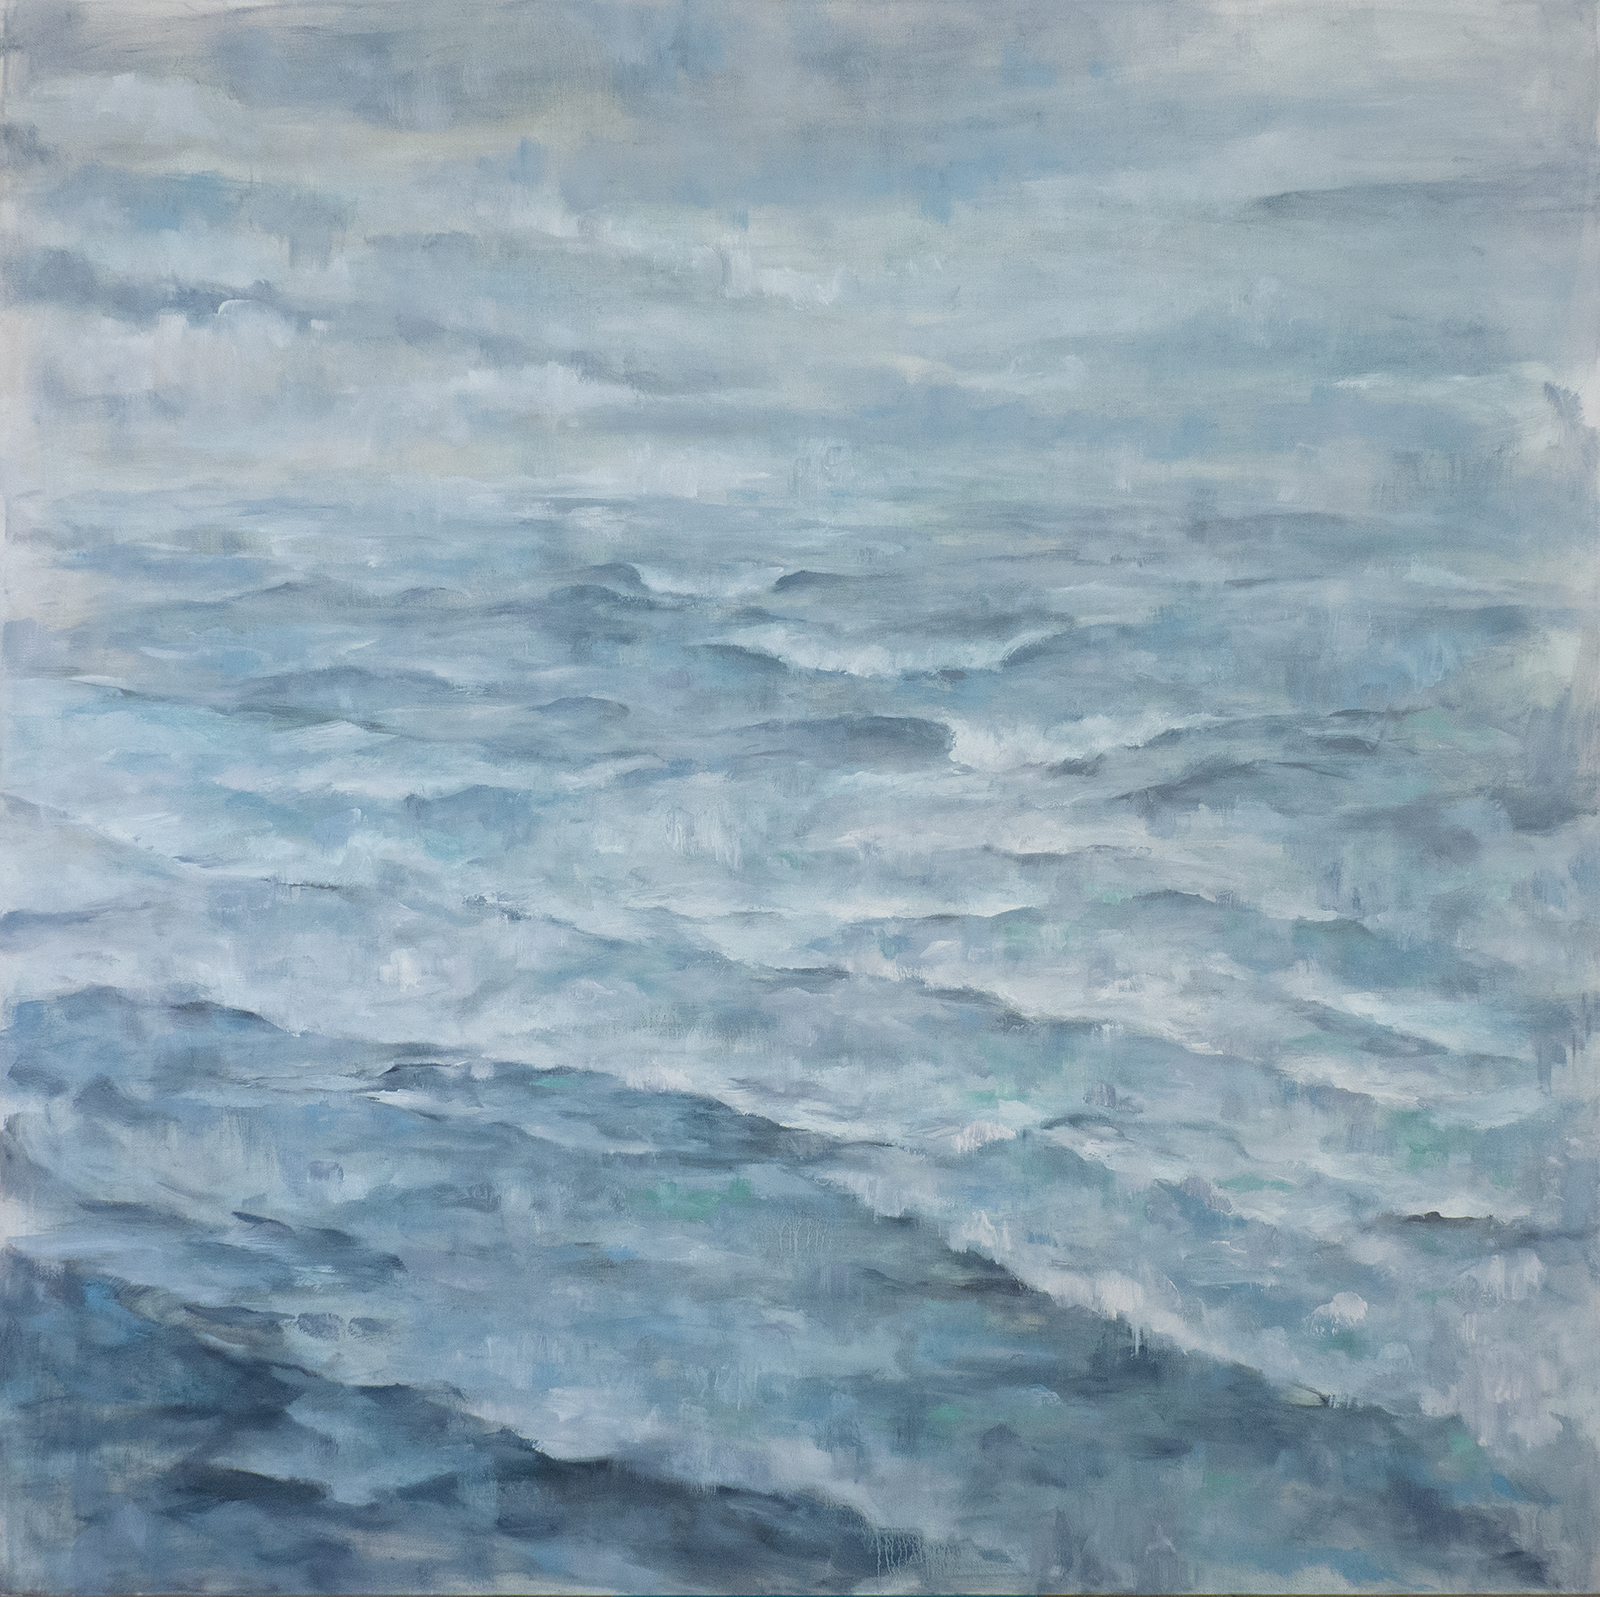 Lost Horizon , 2019. Oil on canvas. 48x48 inches